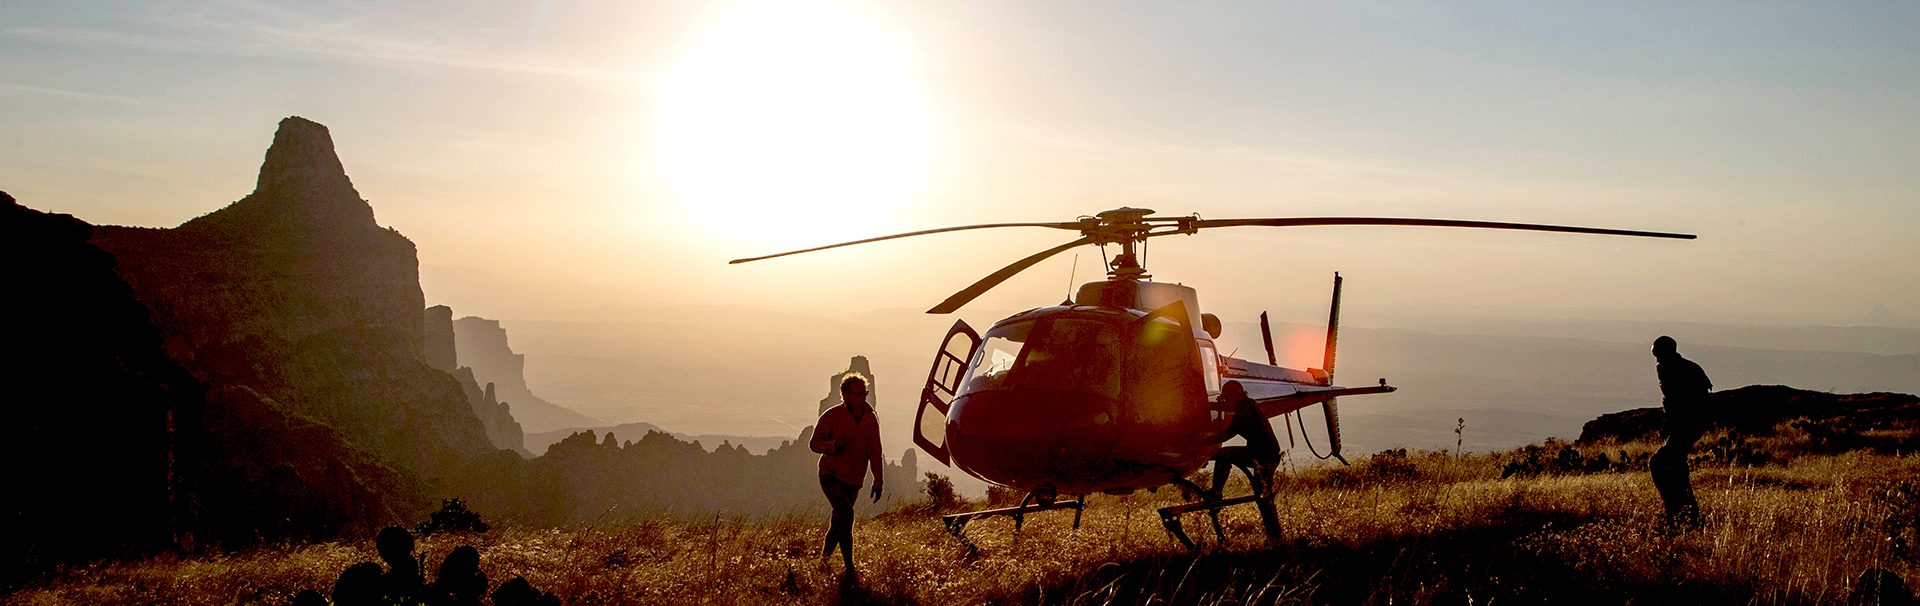 Heli-sundowners in the Tigray region, northern Ethiopia @ Richard Coke